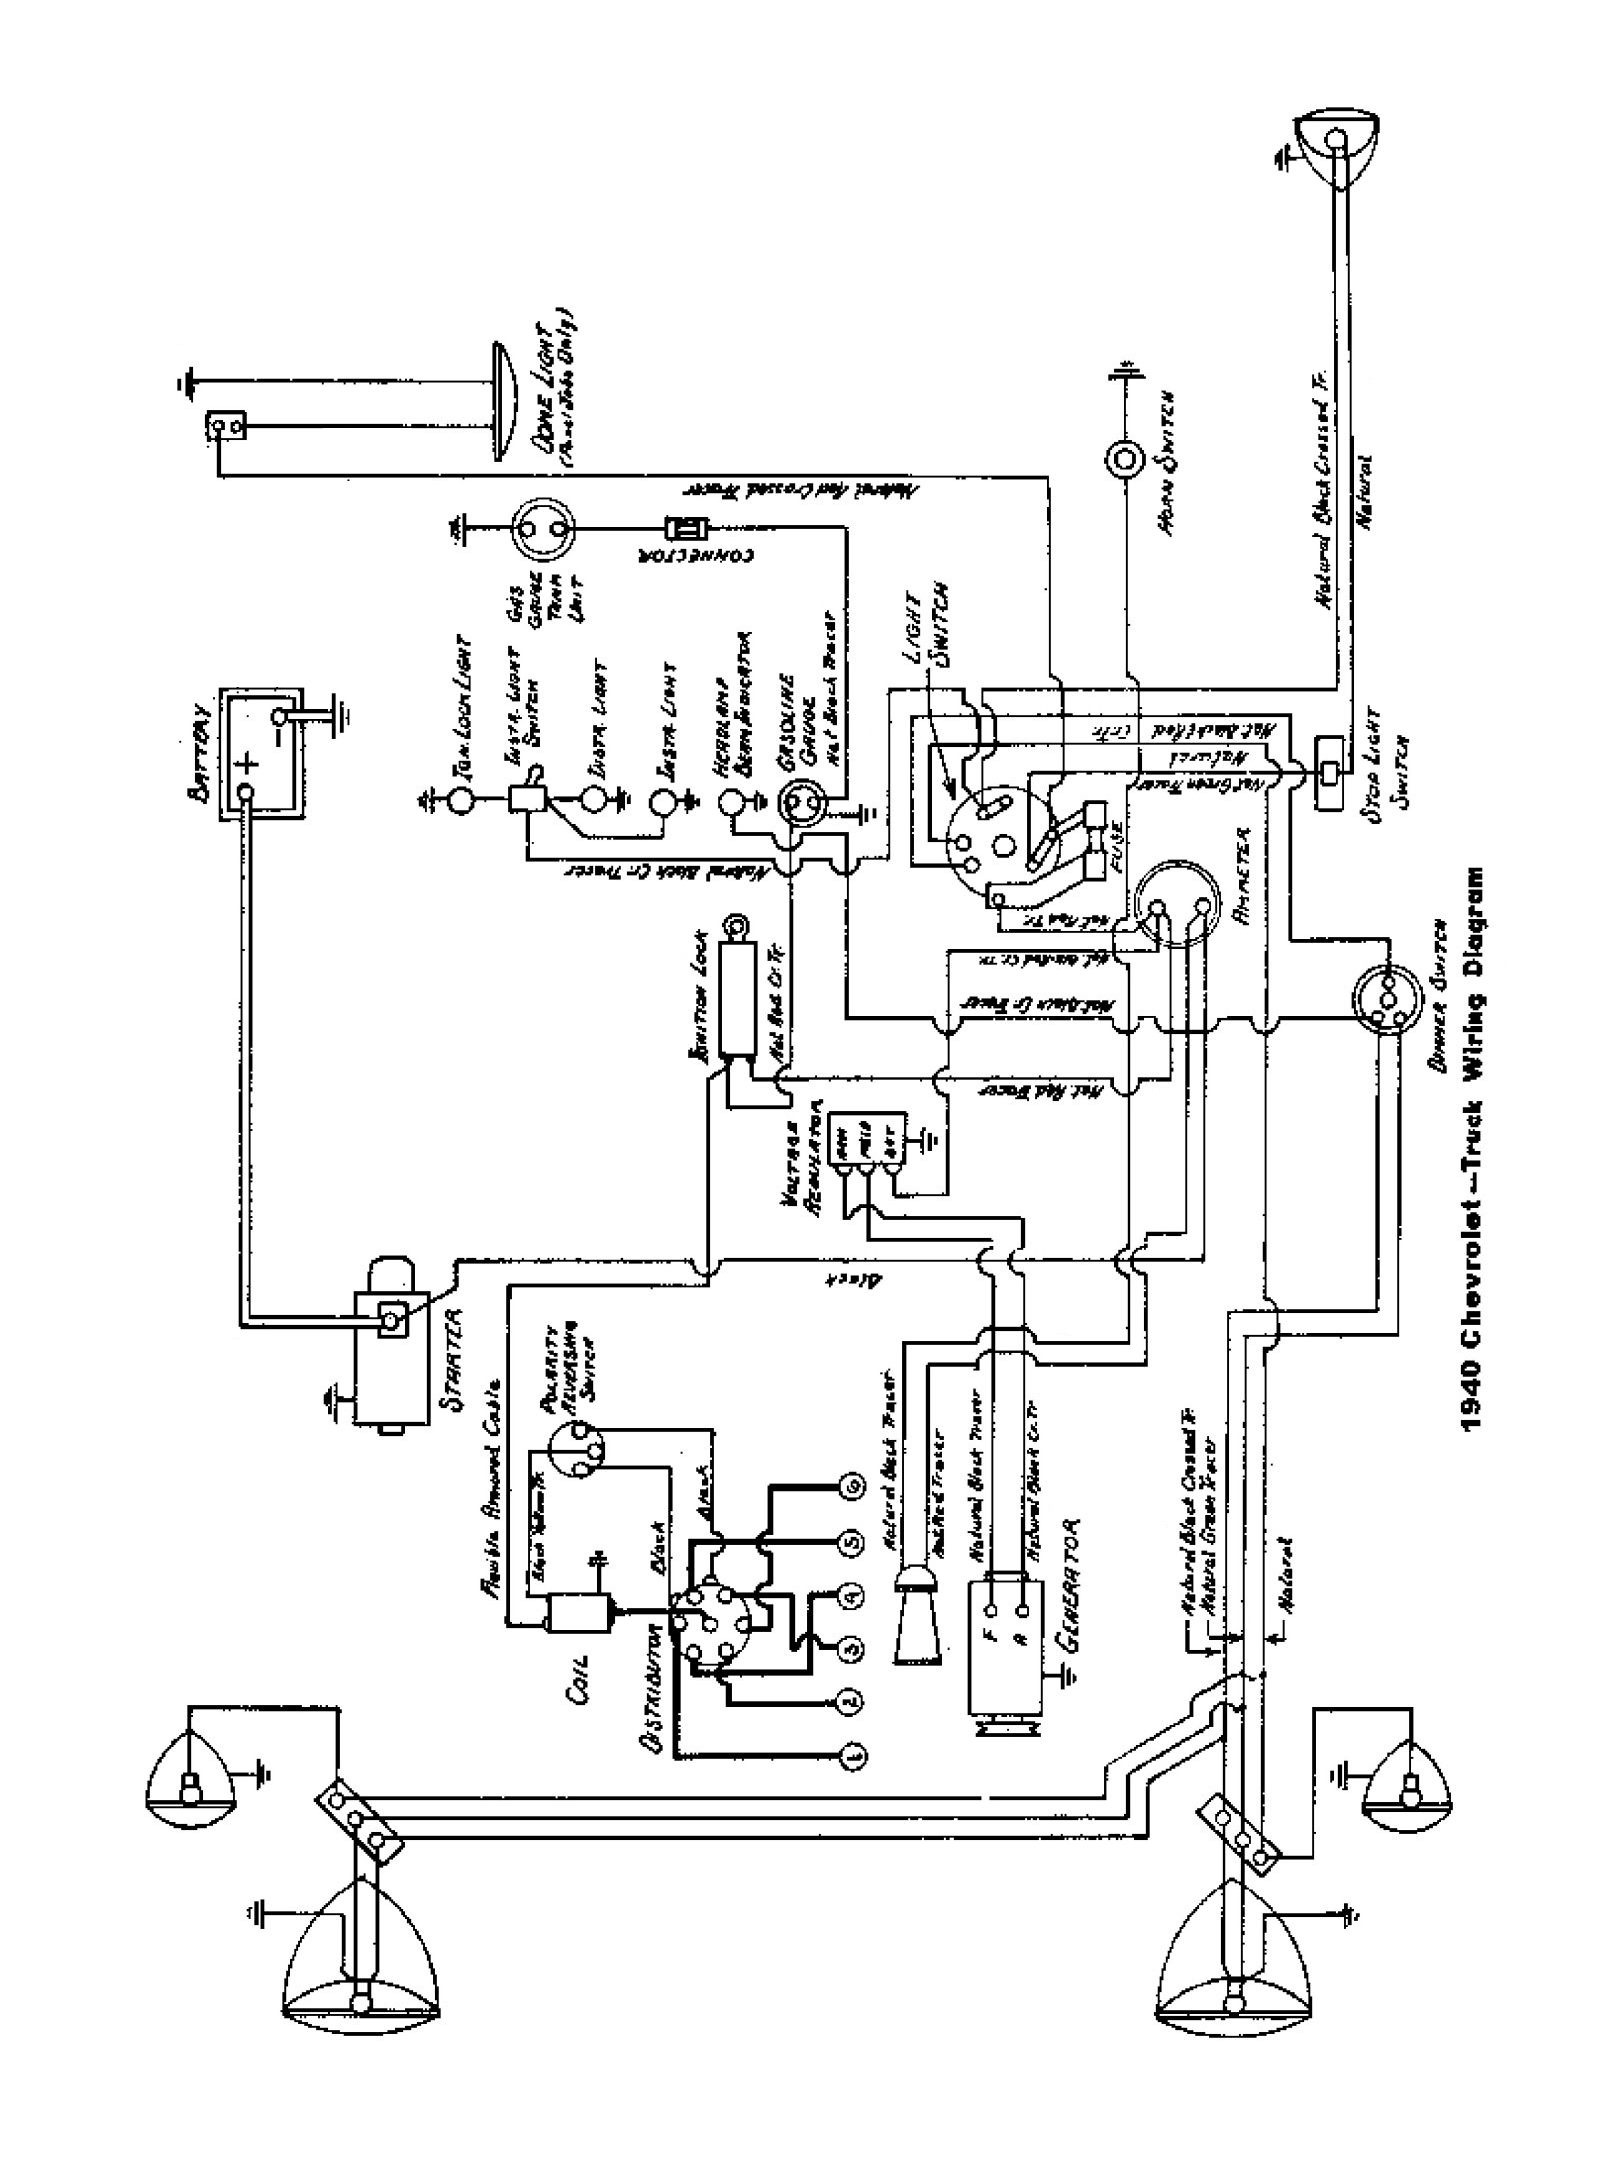 57 chevy pickup wiring wiring diagrams schematics rh alexanderblack co chevy truck wiring harness diagram chevy truck wiring harness